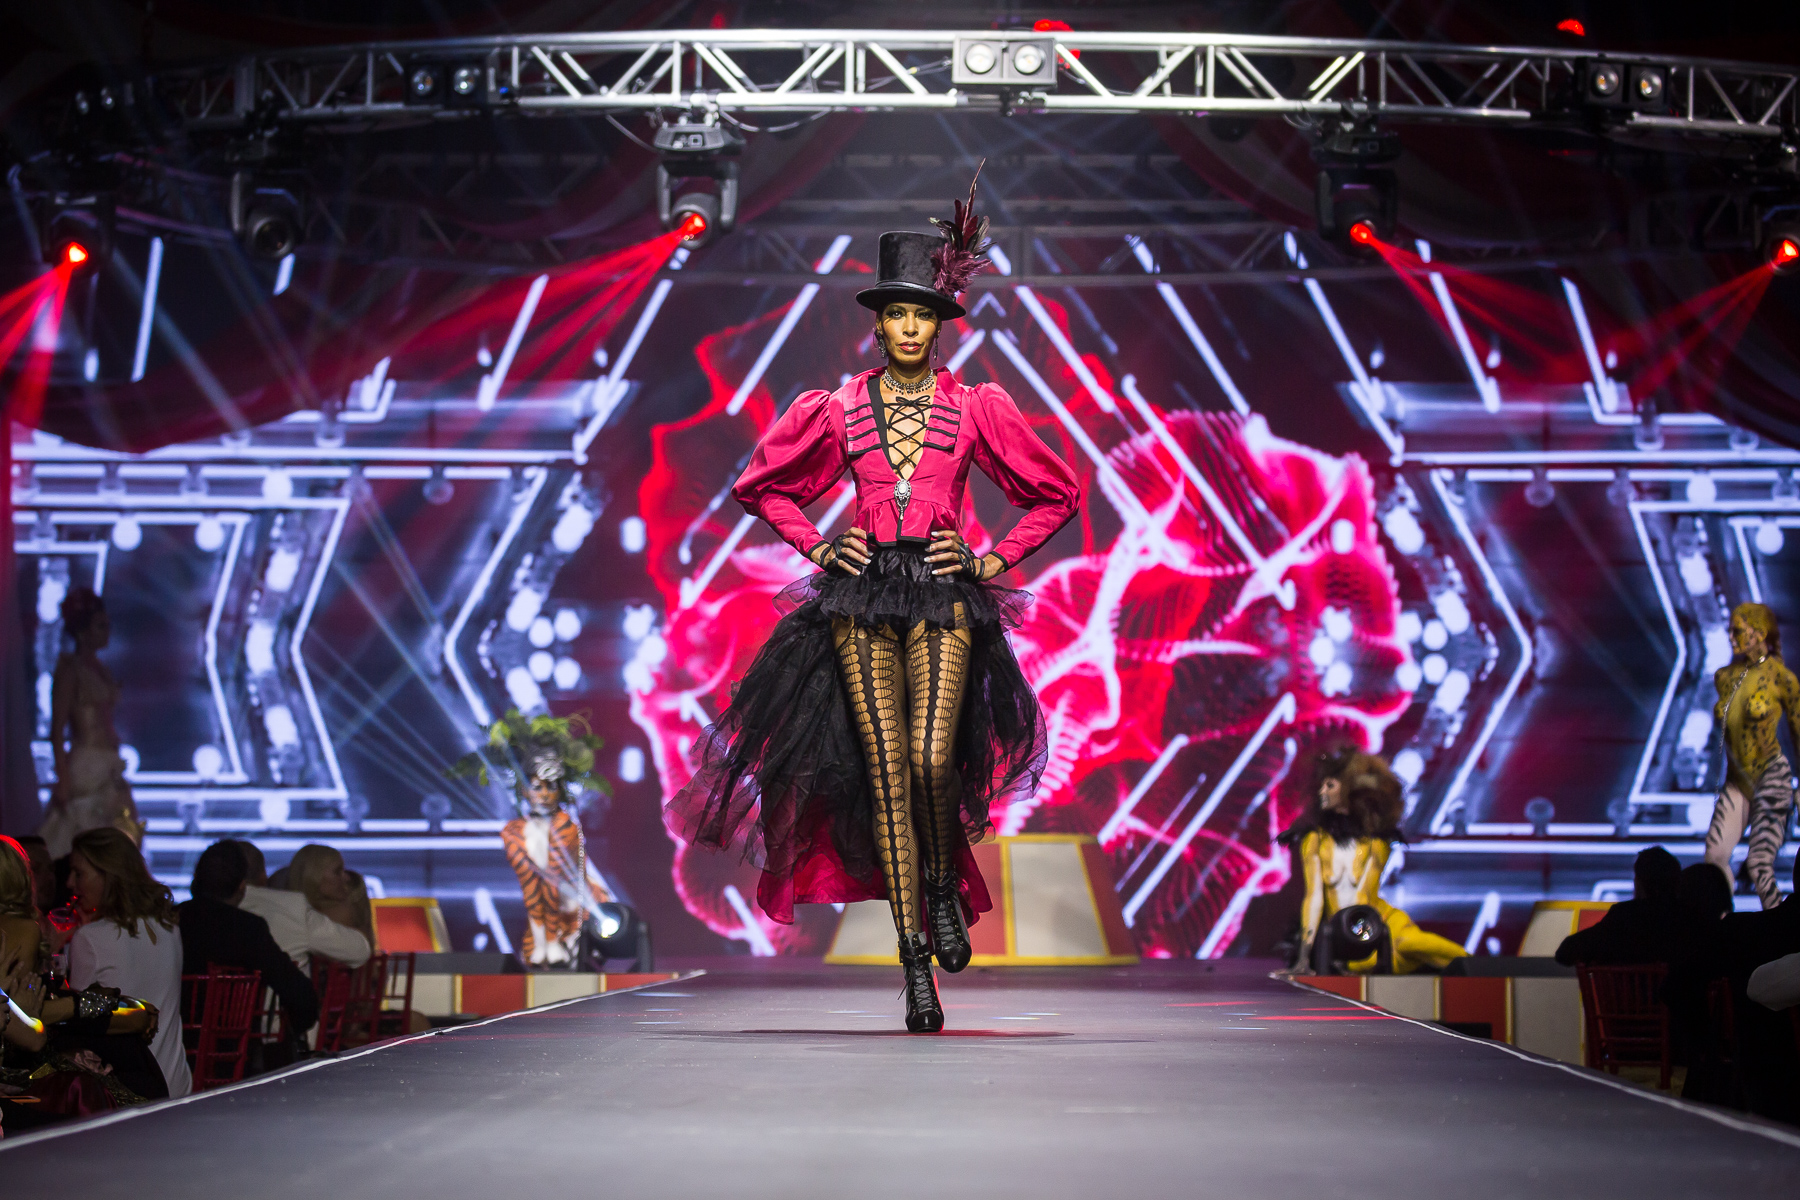 House of DIFFA: Circo Rouge 2016 - Omni Dallas Hotel